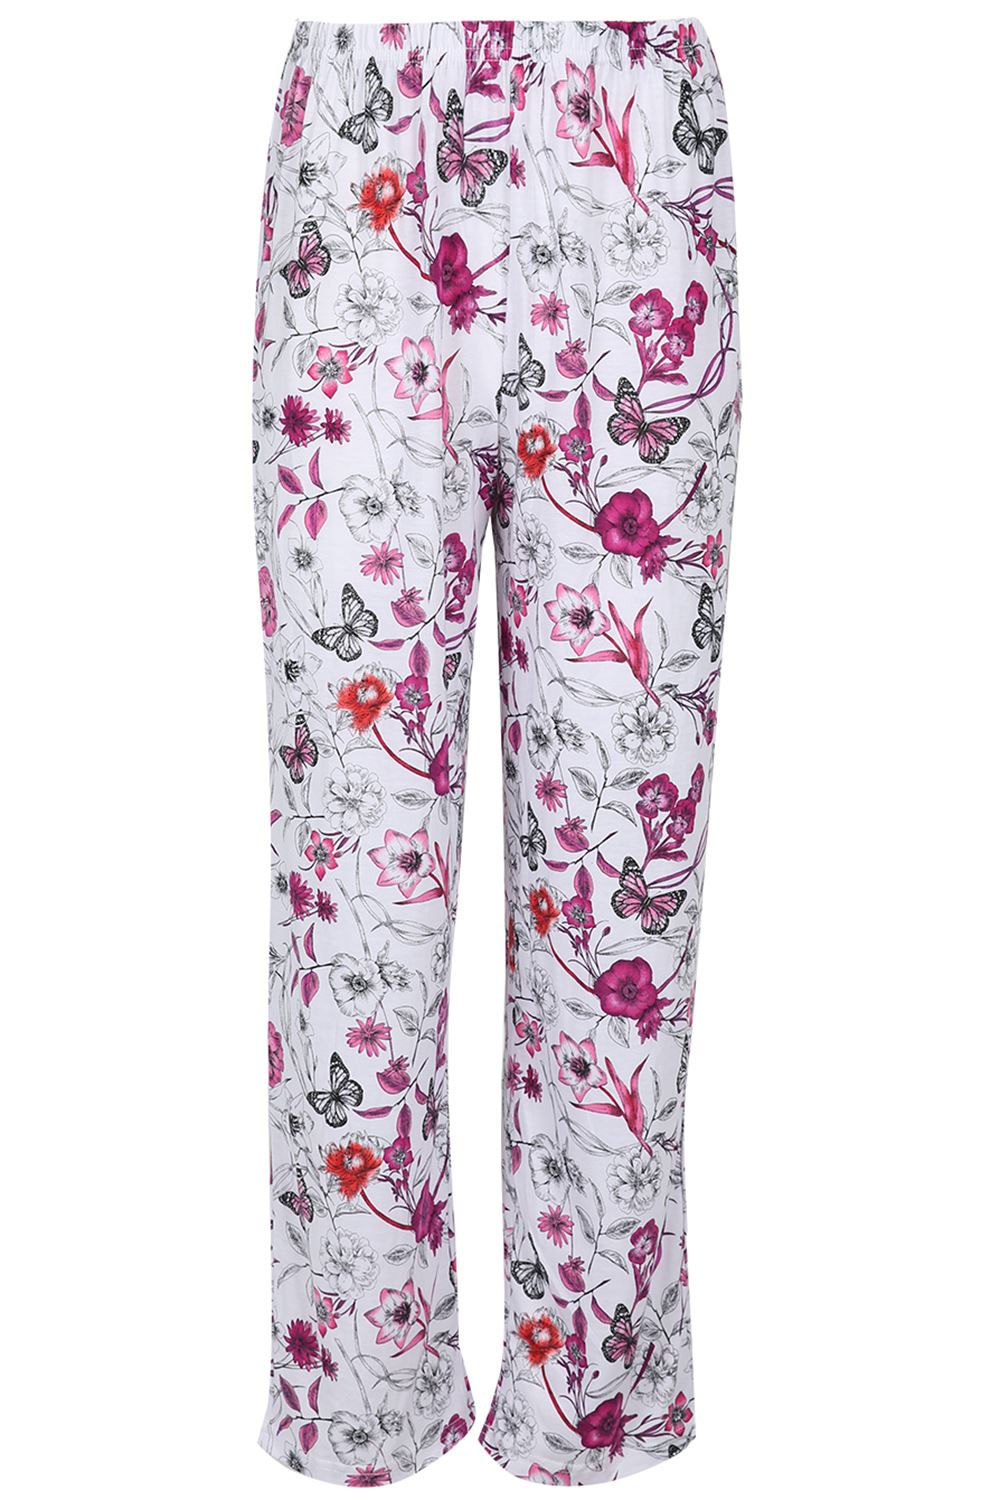 Wide Leg Trousers & Flare Trousers for Women Let your legs breathe every now and then, and experiment with Free People's wide leg trousers & flare trousers. The exaggerated shape and length of flare trousers instantly freshen up your tops, as well as infusing super unique patterns, and beautiful print and colour combinations.